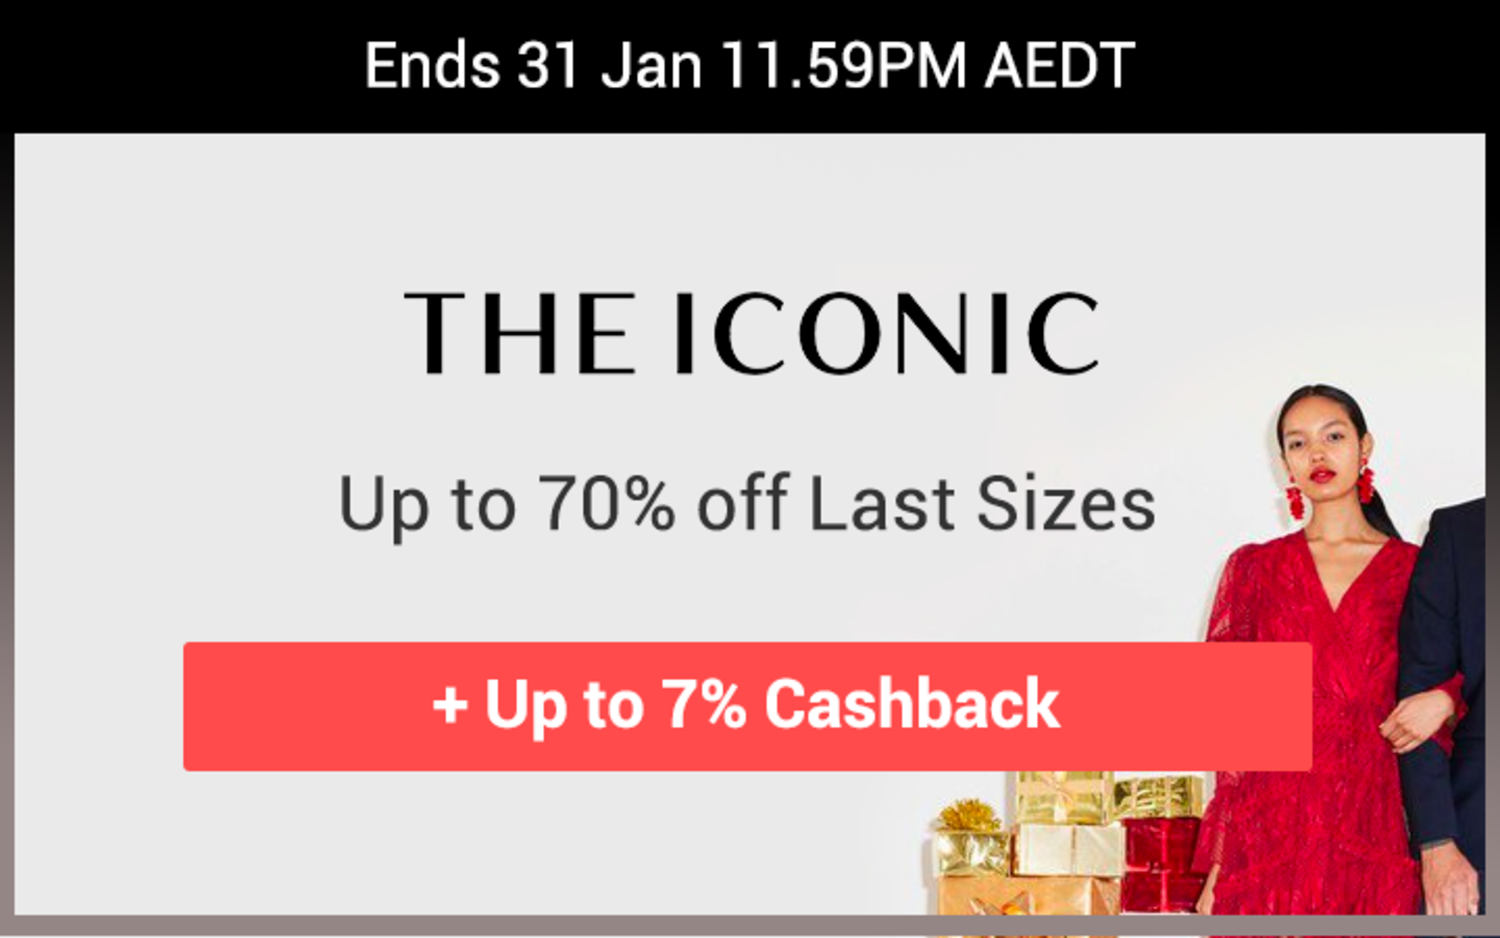 THE ICONIC - Up to 70% off Last Sizes